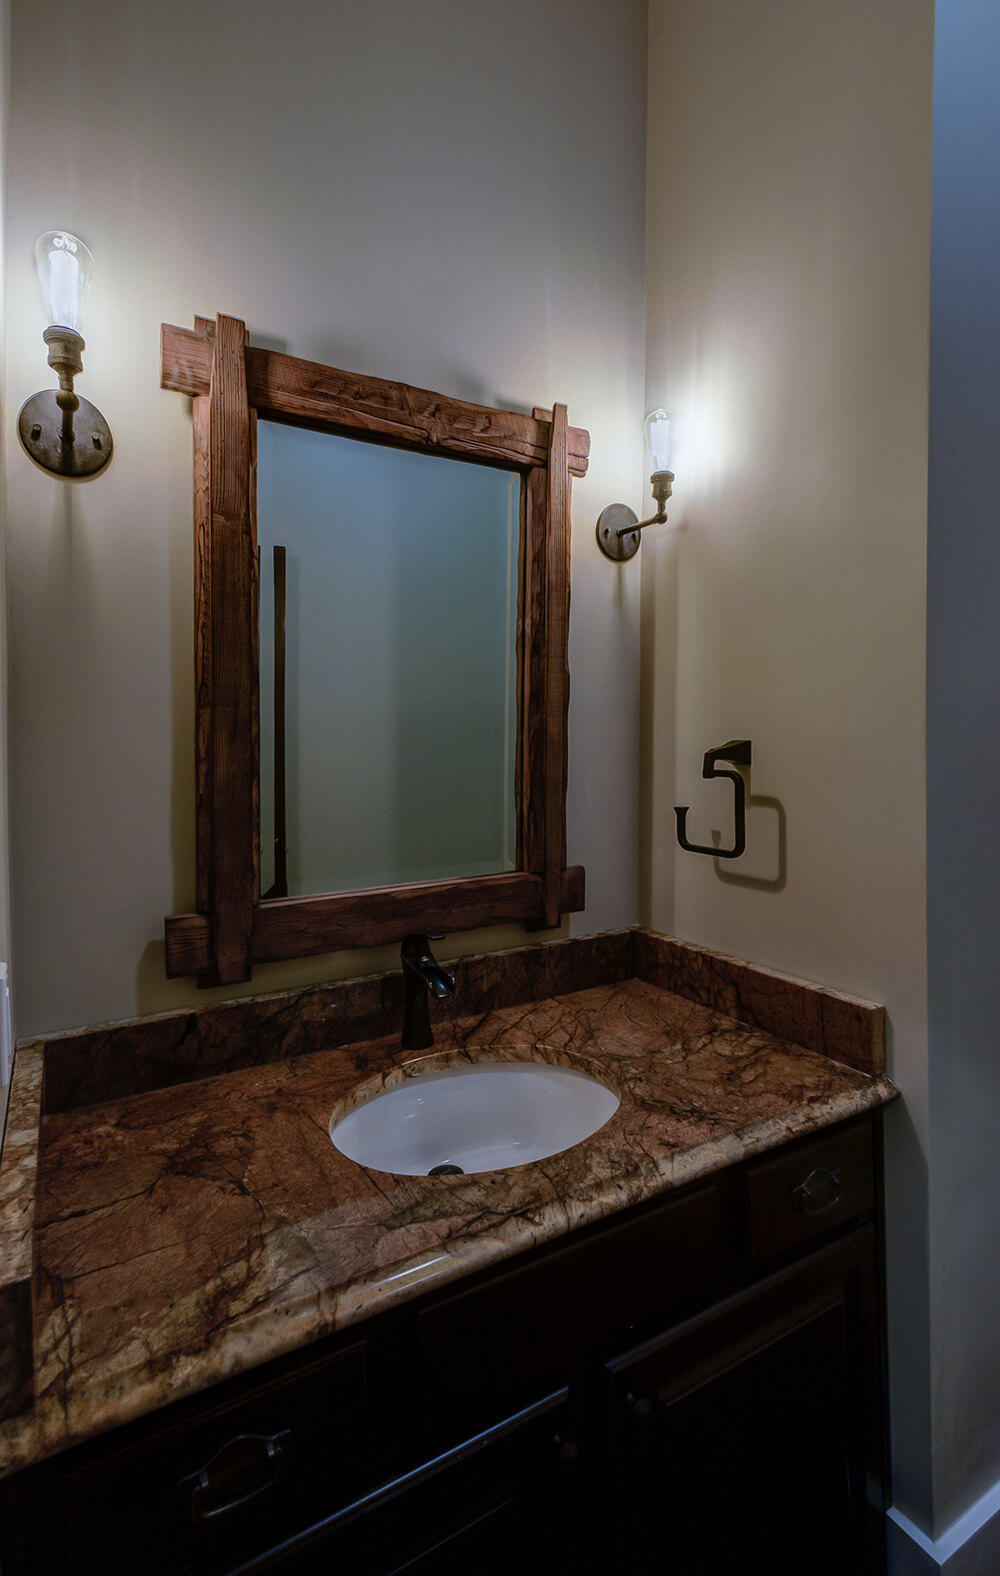 The half bath attached to the kitchen features more reclaimed barn wood around the mirror that accents the color of the countertop. The fixtures and lights of the room add to the rustic decor and highlight the wood frame well.